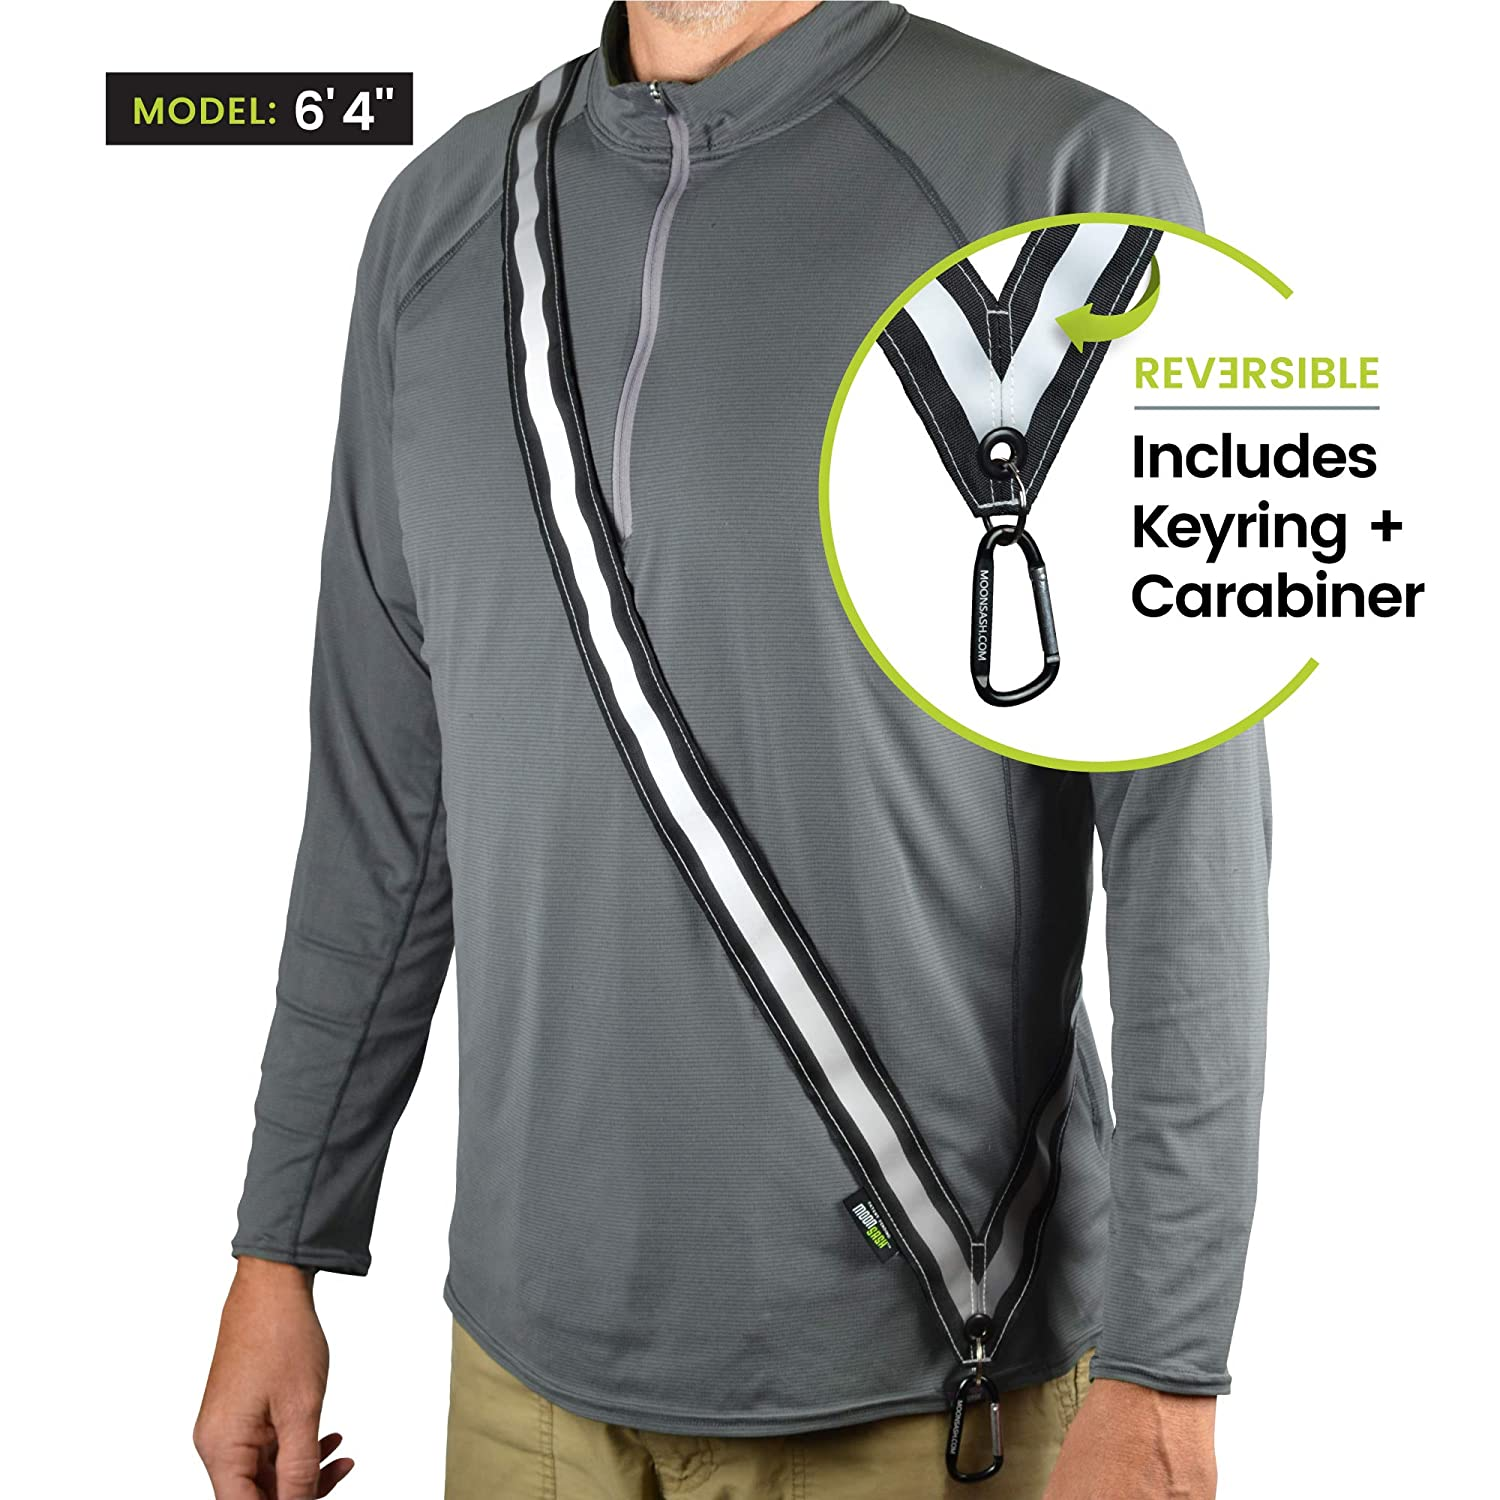 Harness /& Belt Alternative  Reversible USA Patented Reflective Sash  Night Safety Gear for Dog Walking MOONSASH Comfortable /& Practical  Get Noticed! Vest Scooters Commuters Bikers